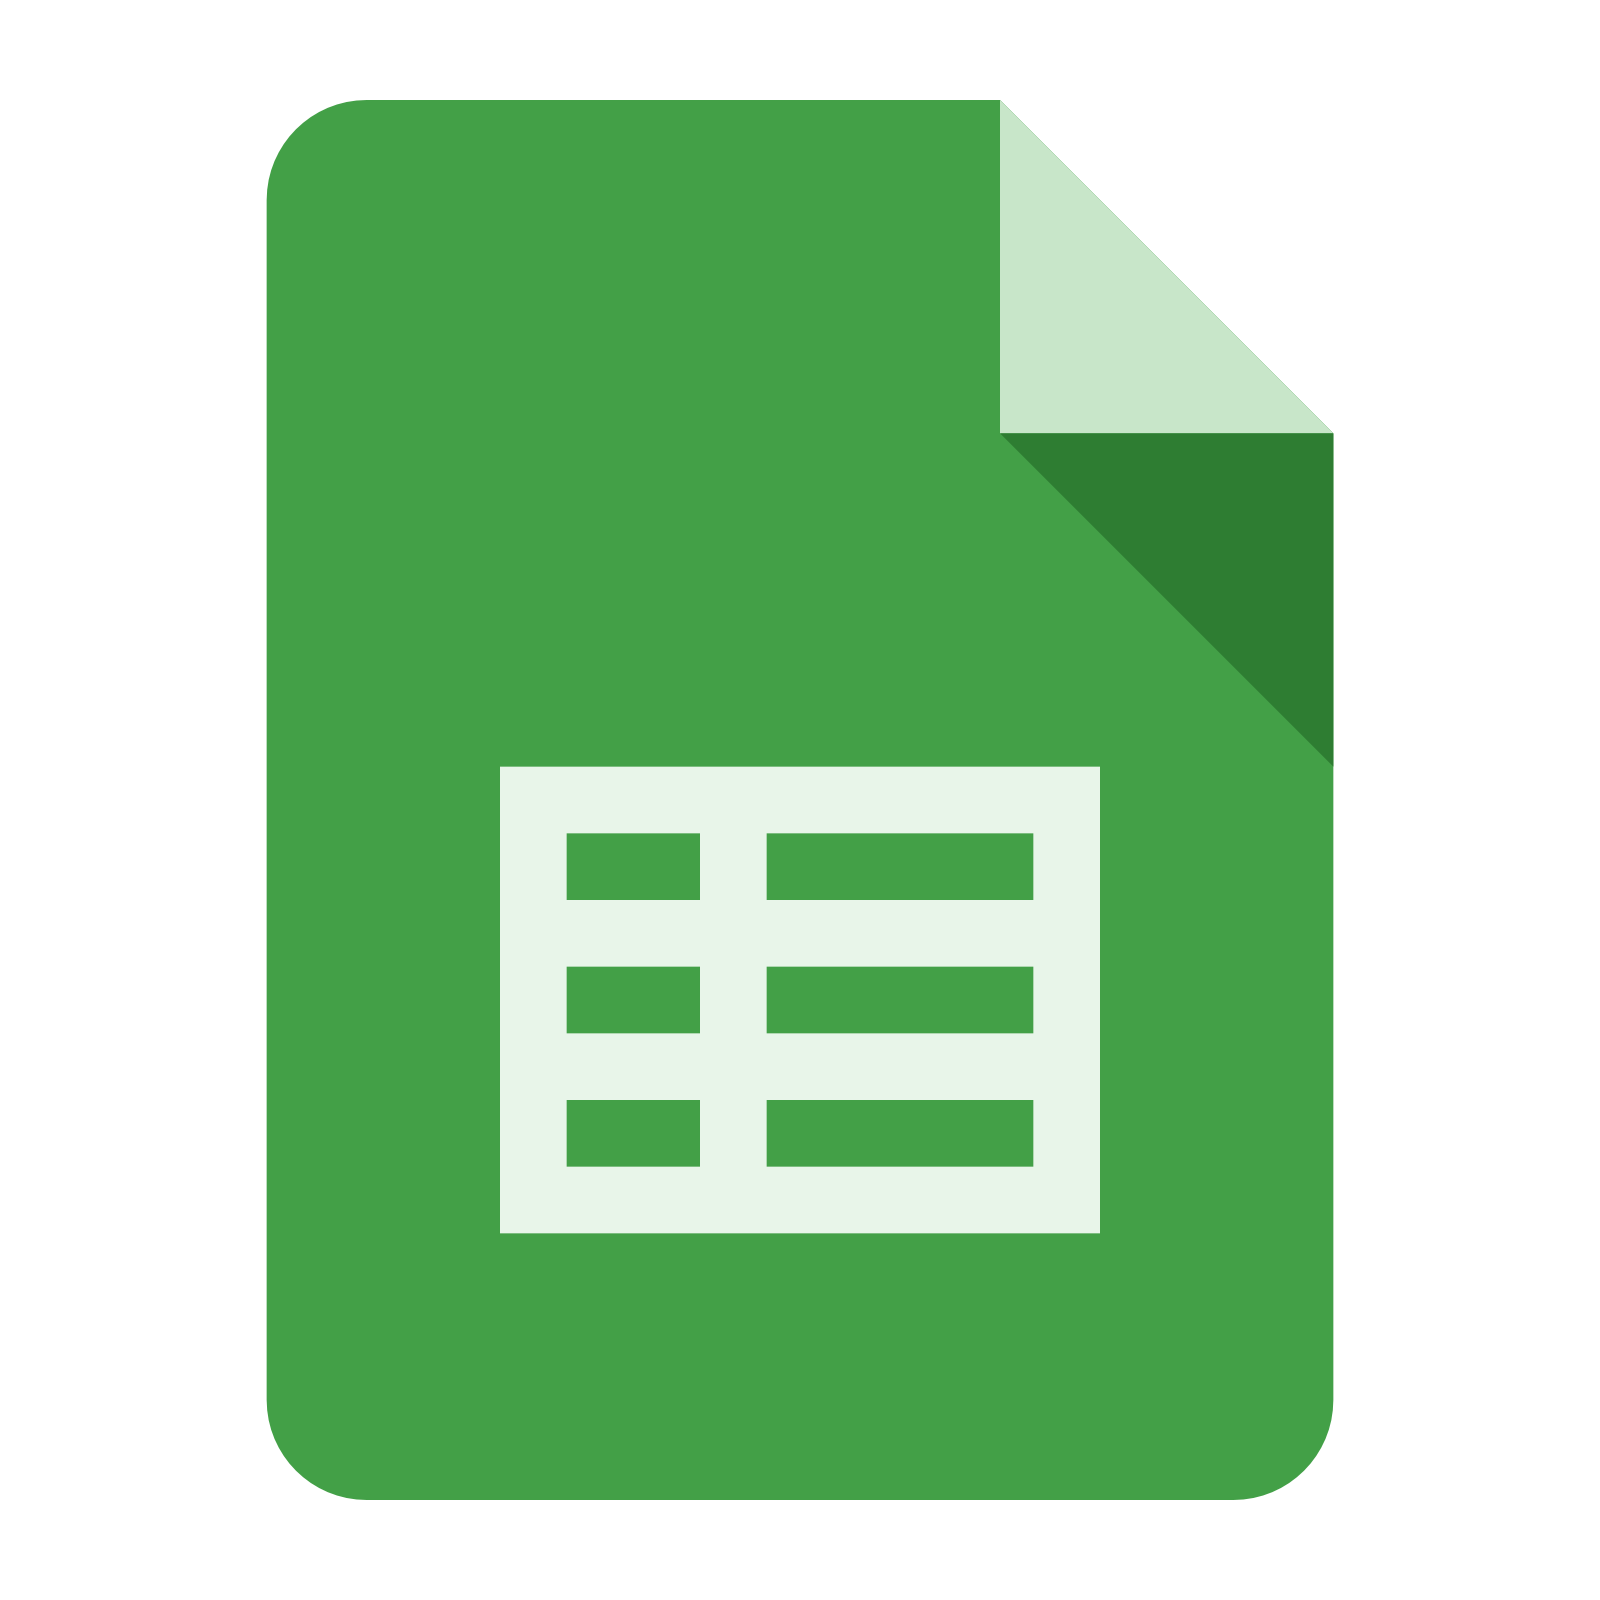 How to connect to Google Sheets with Python - Rizwan Qaiser